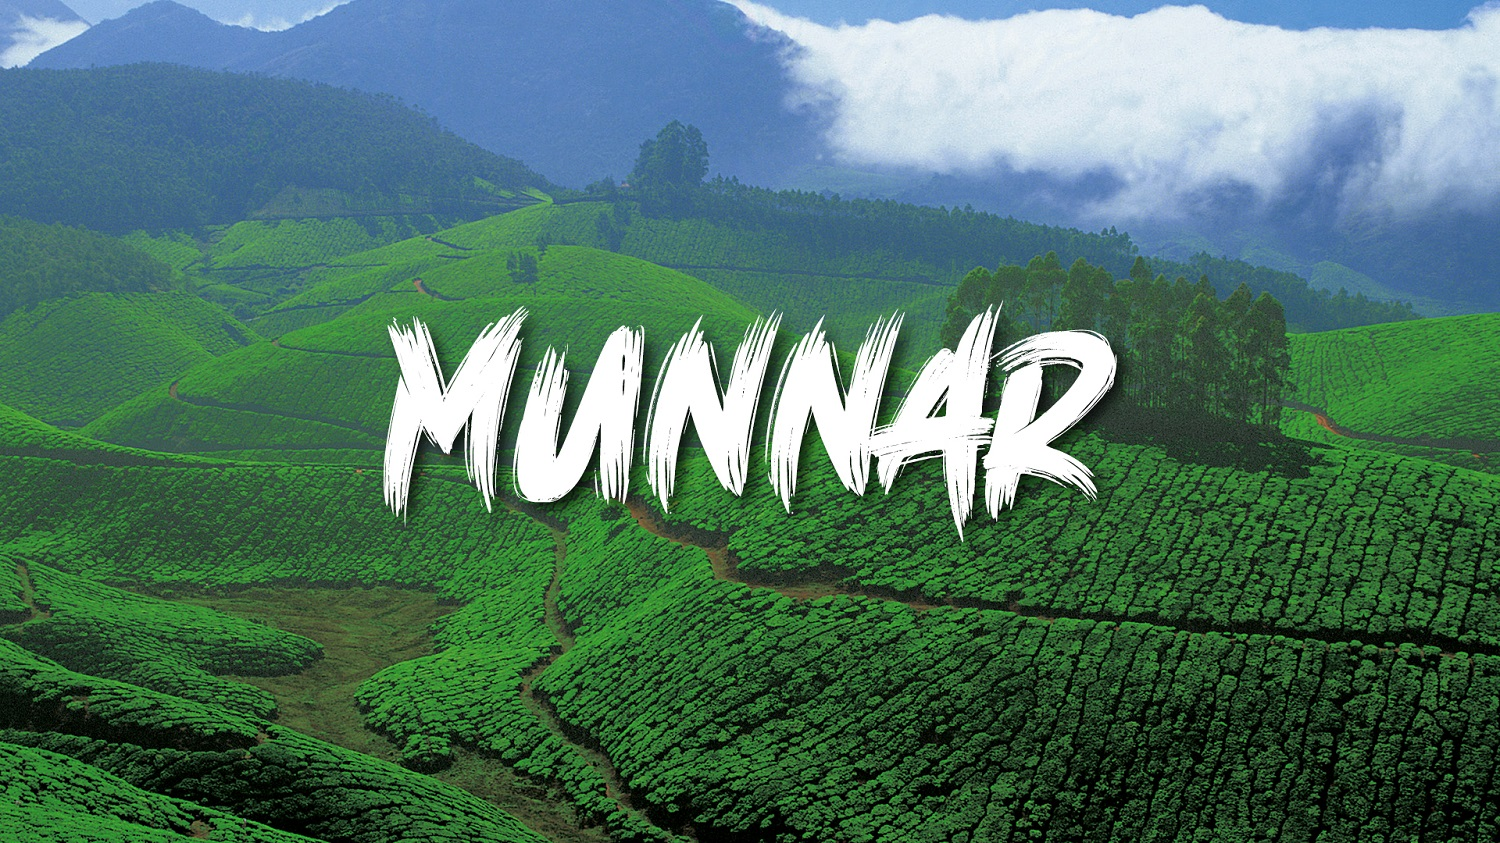 Munnar - A Hills Station amidst Forests and Rivers